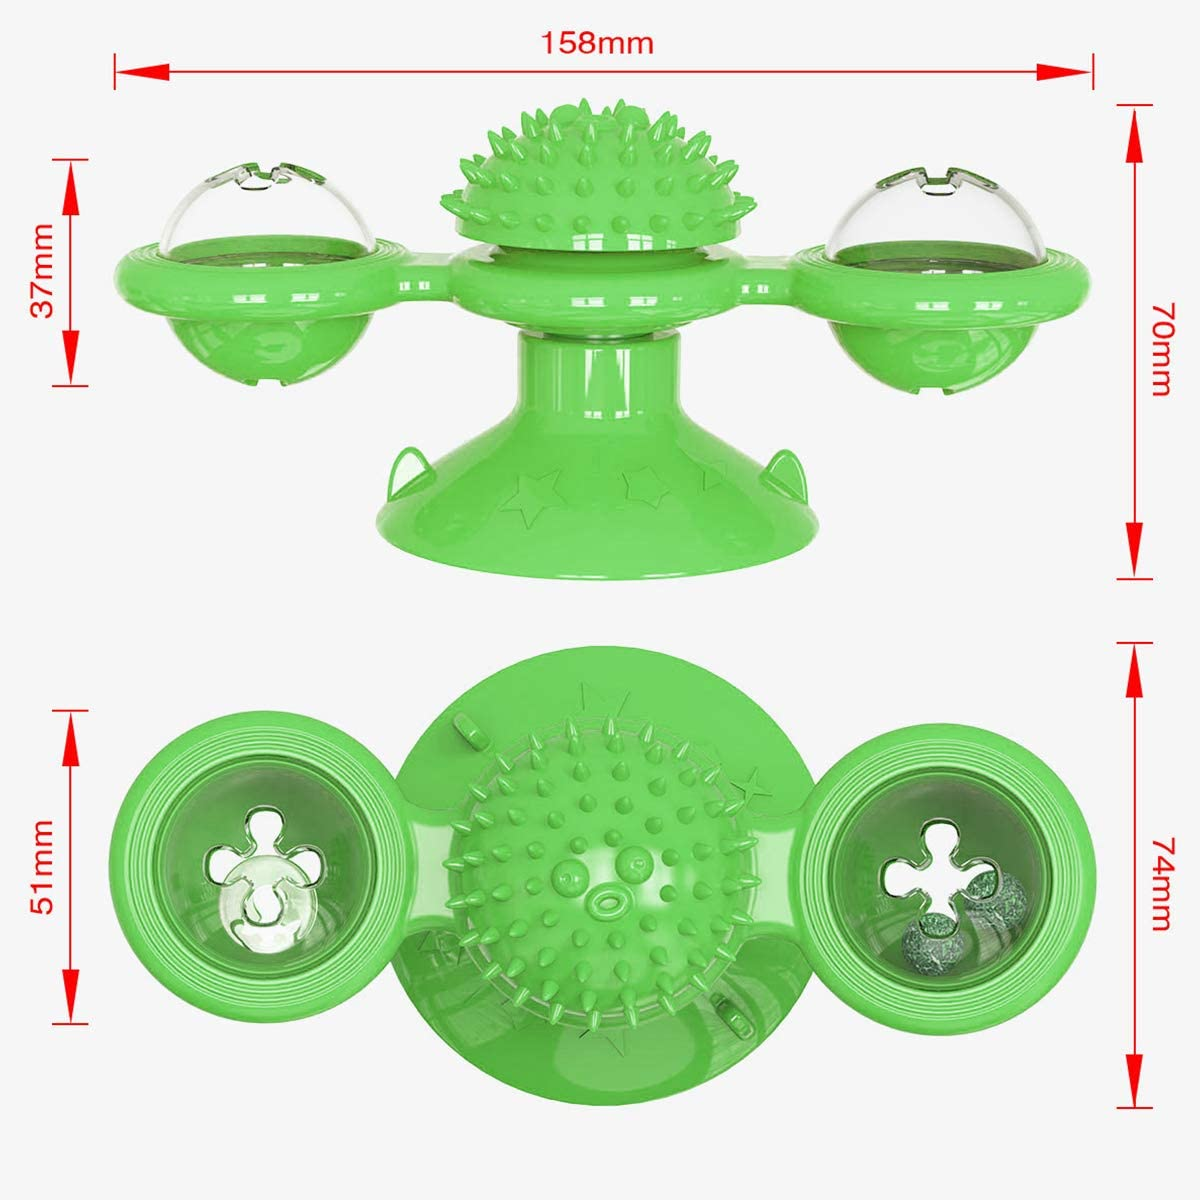 1 PC, Green Windmill Cat Toy Silicone Turntable Teasing Pet Toy Interactive Rotatable Ball for Pets Home Playing